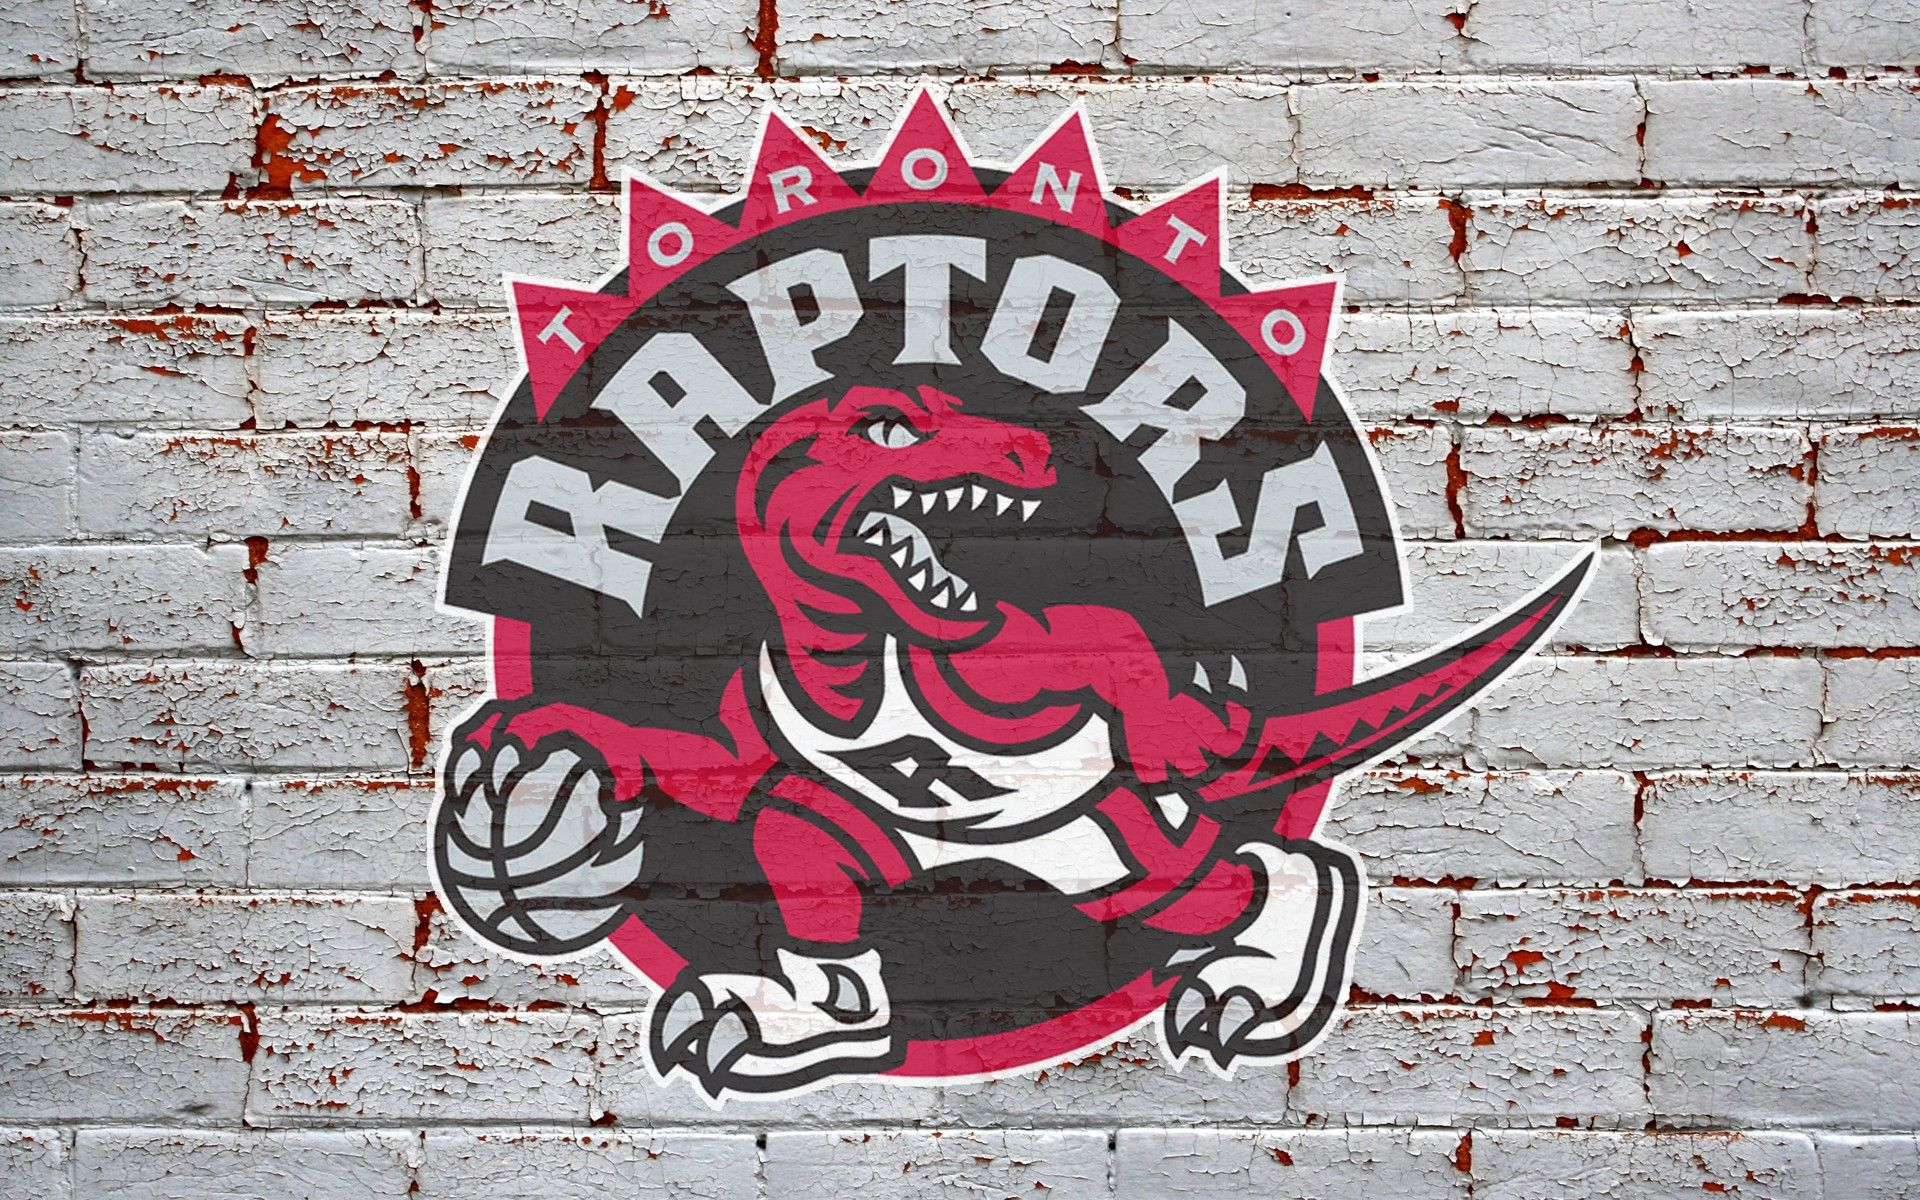 1920x1200 NBA Toronto Raptors Logo On Grey Brick Wall HD Wallpaper